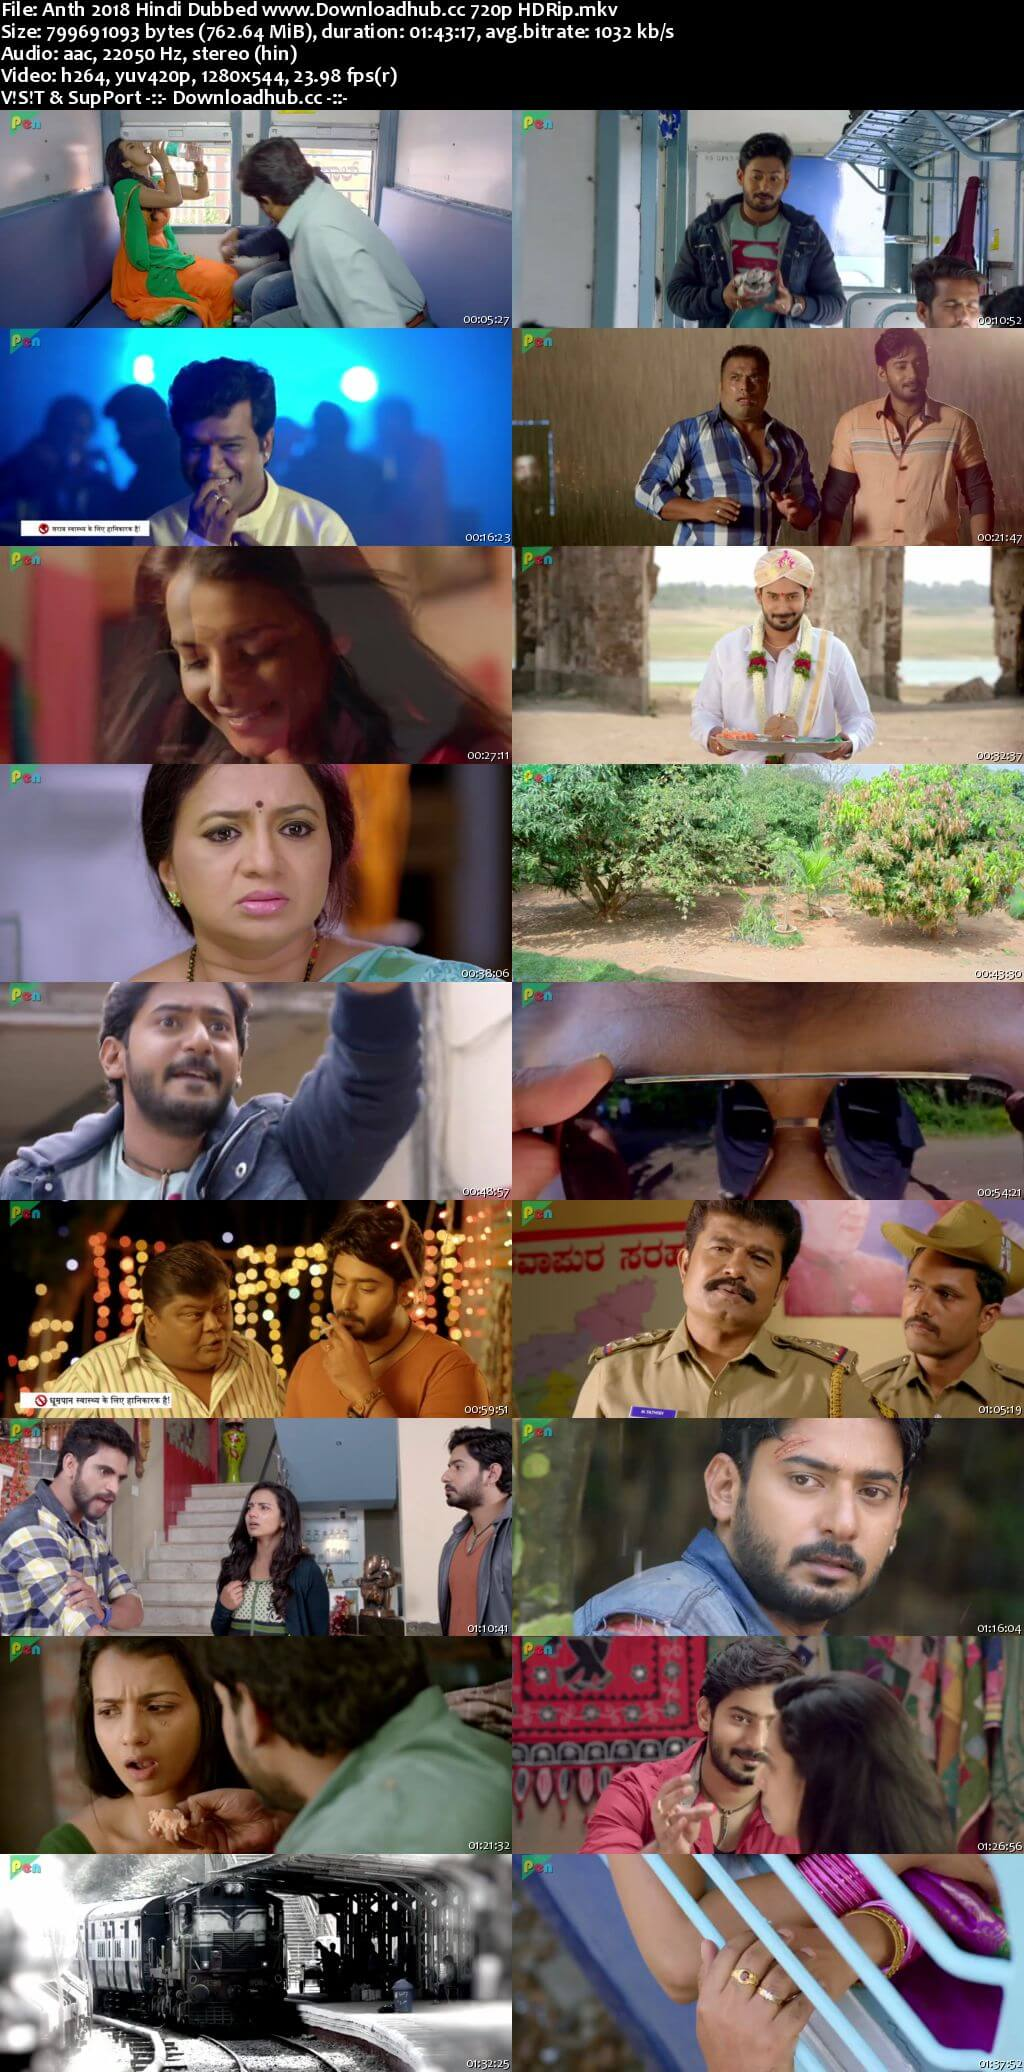 Anth 2018 Hindi Dubbed 720p HDRip x264